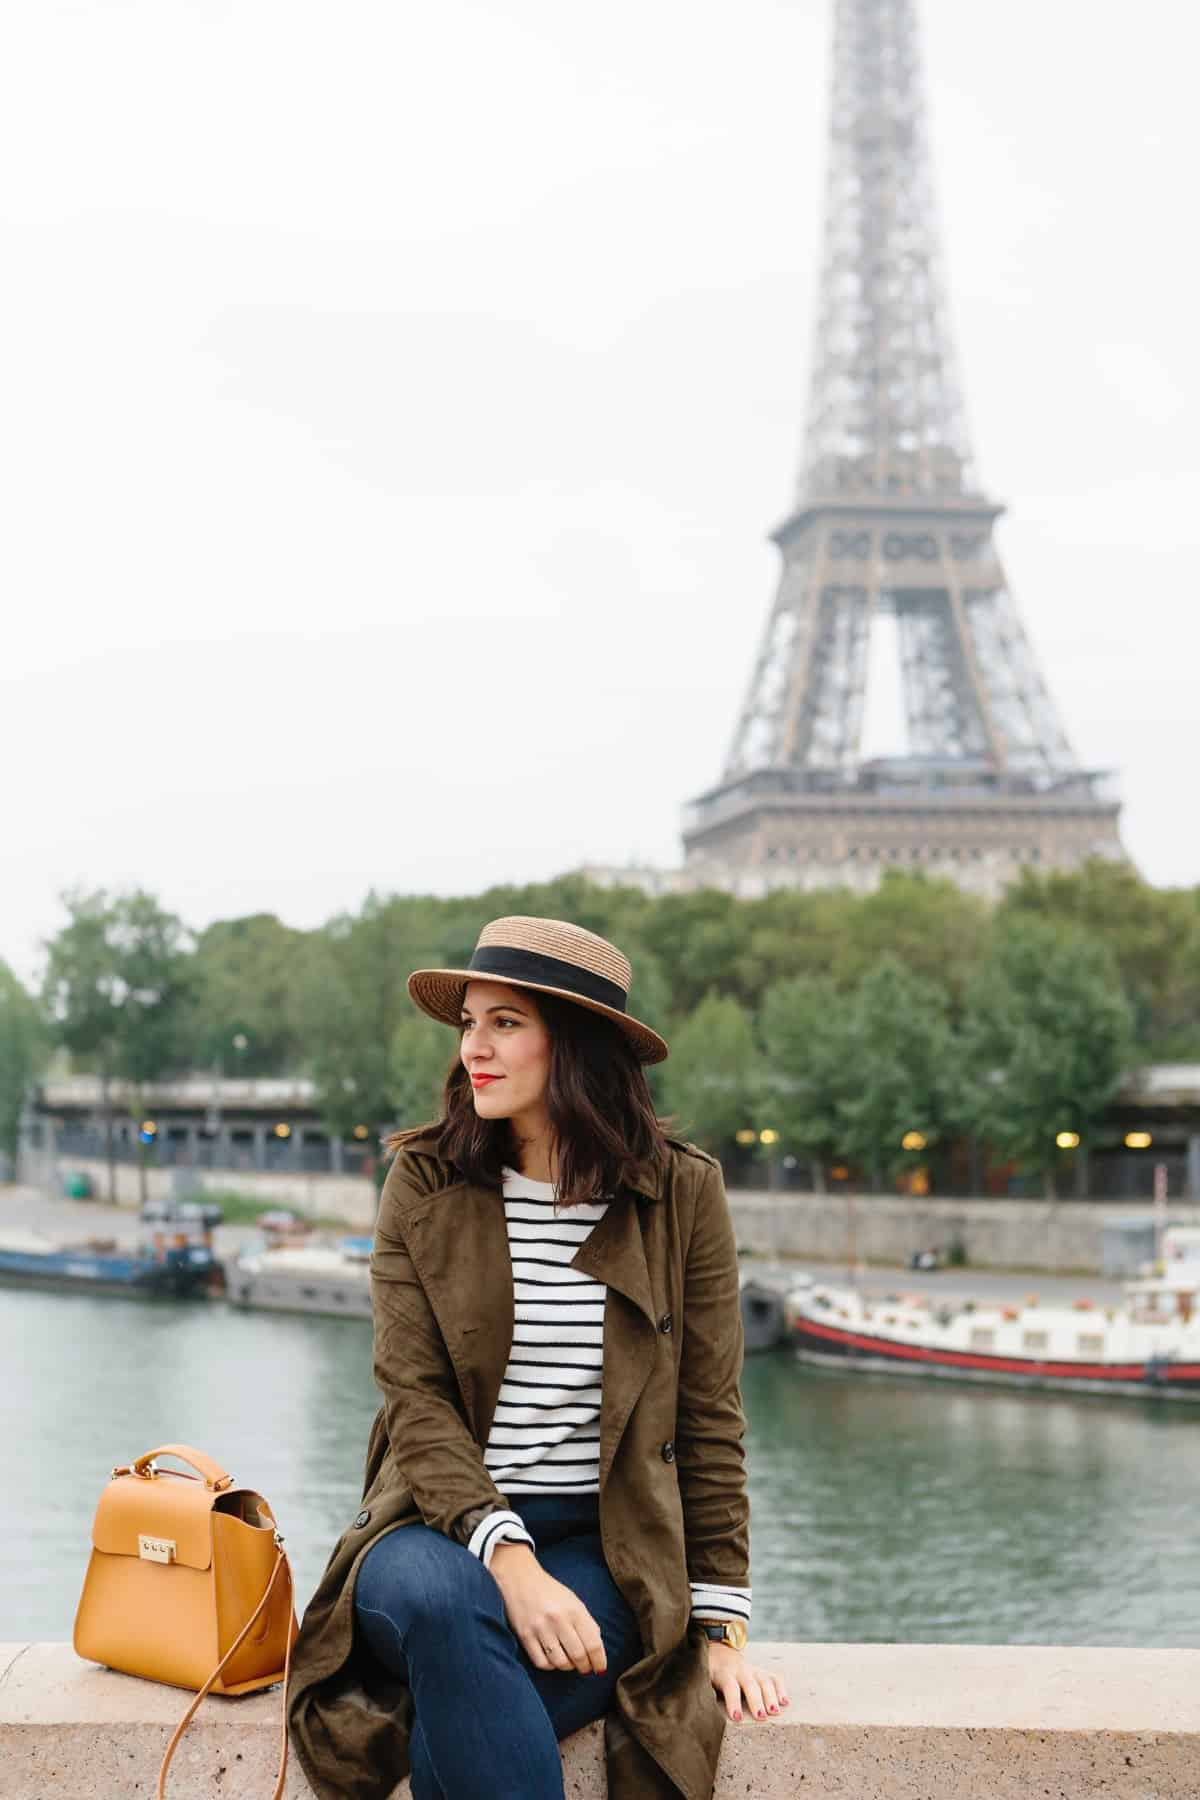 Eiffel Tower Outfit Photo Ideas My Style Vita